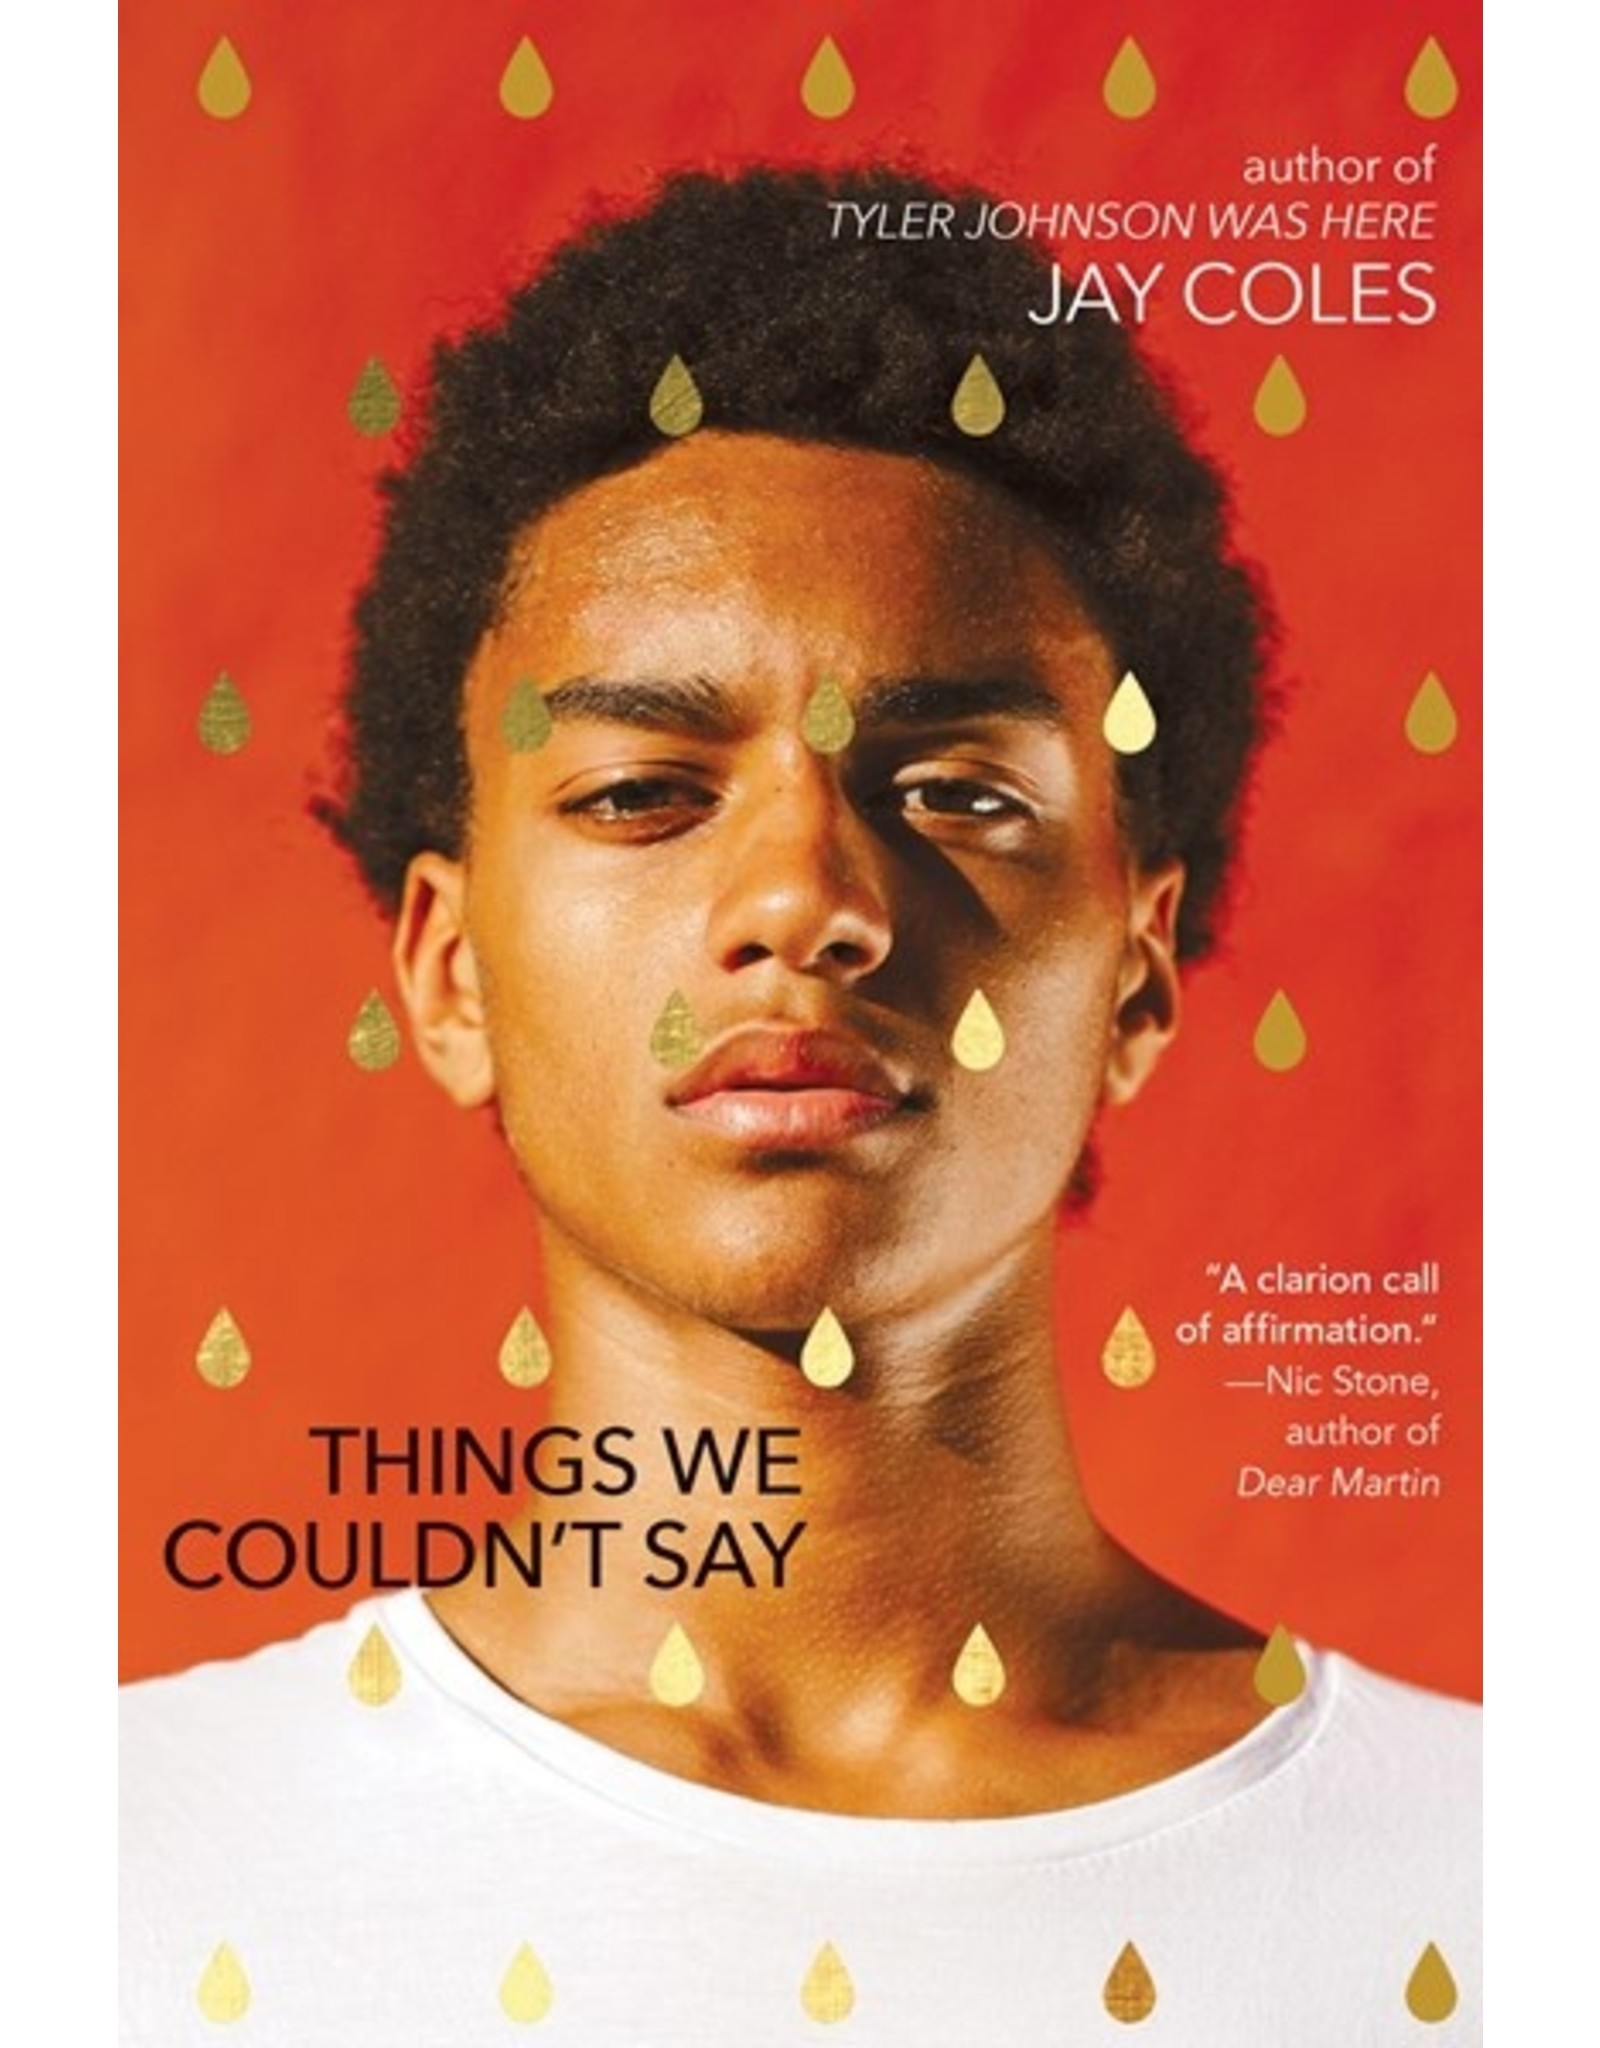 Books Things We Couldn't Say by Jay Coles (Signed Copies)